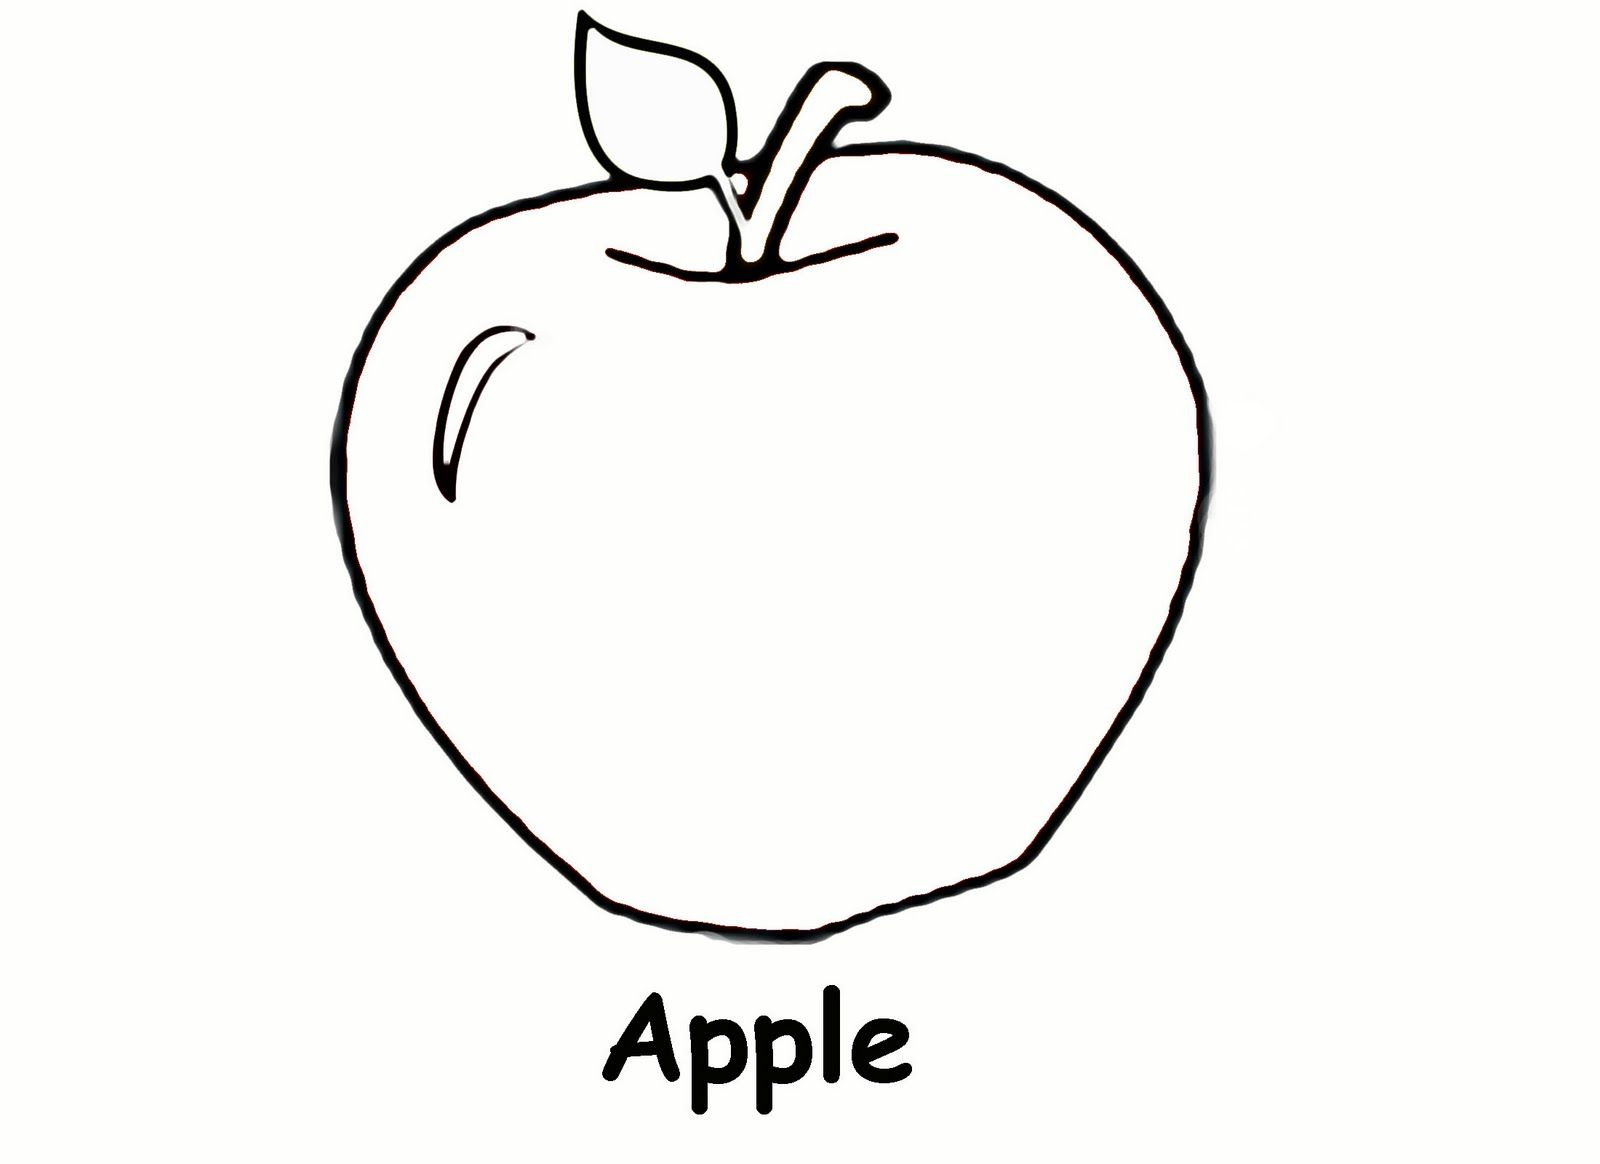 freecoloringbookpages free printable apple coloring pages for kids - Color Book Printable